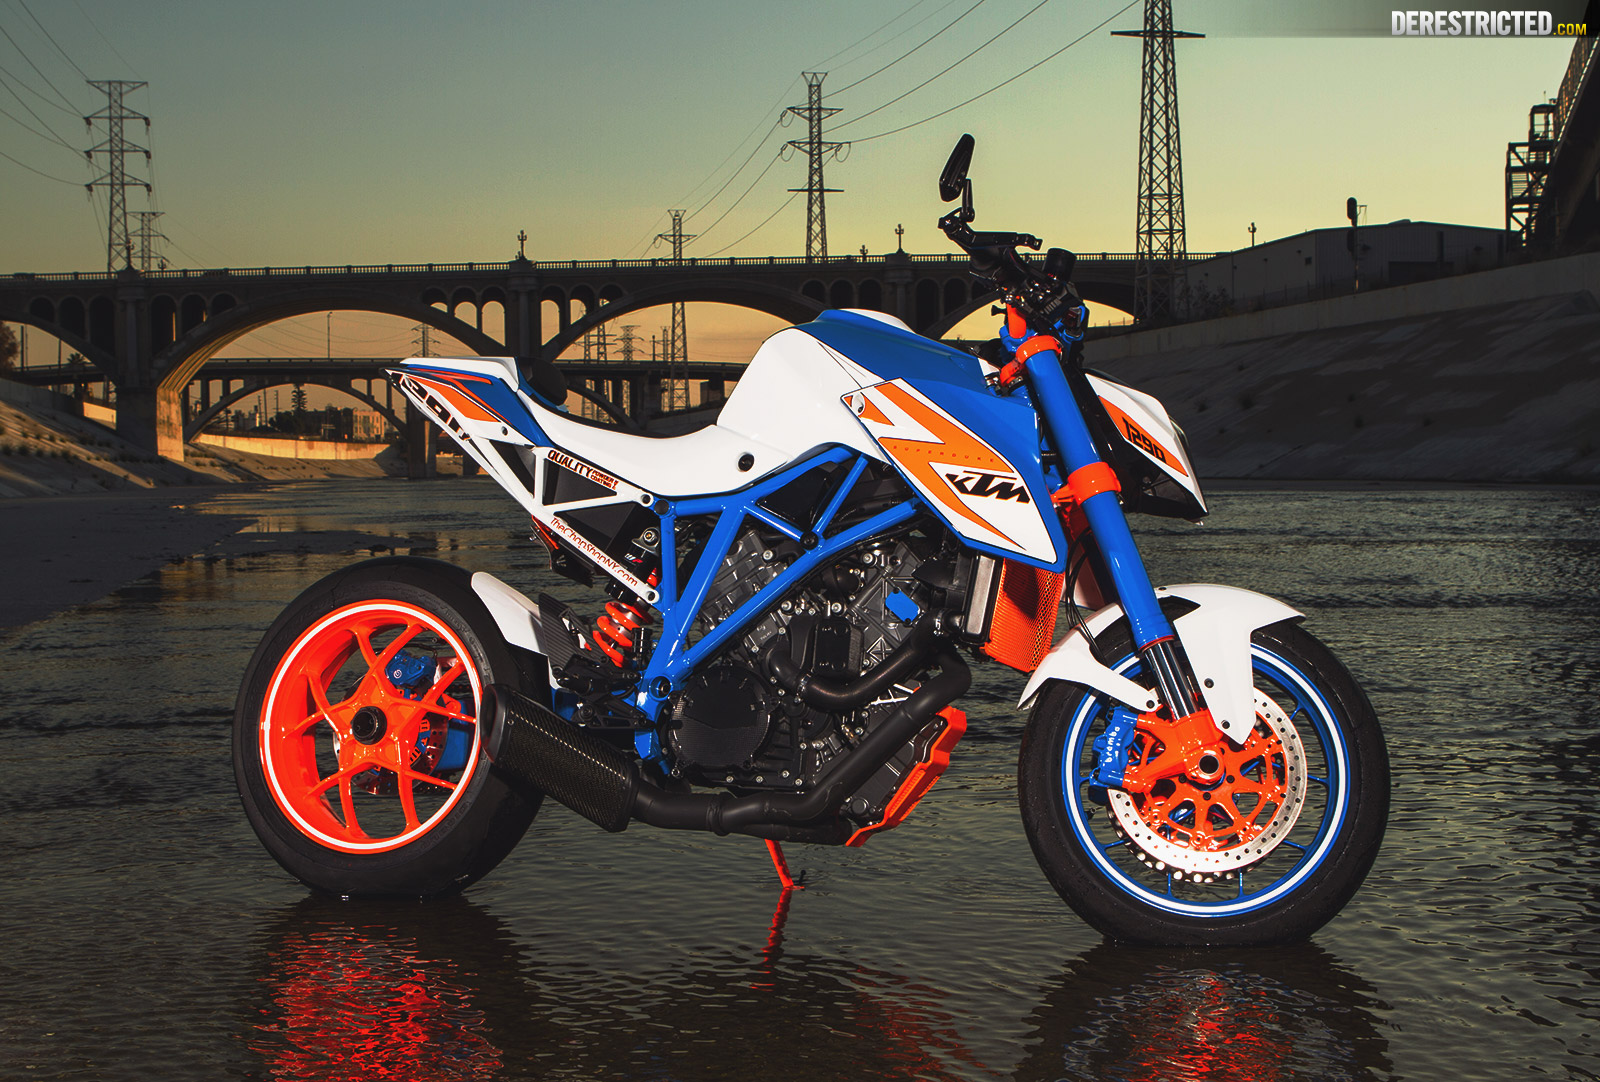 ktm-superduke-charlies-chop-shop-16